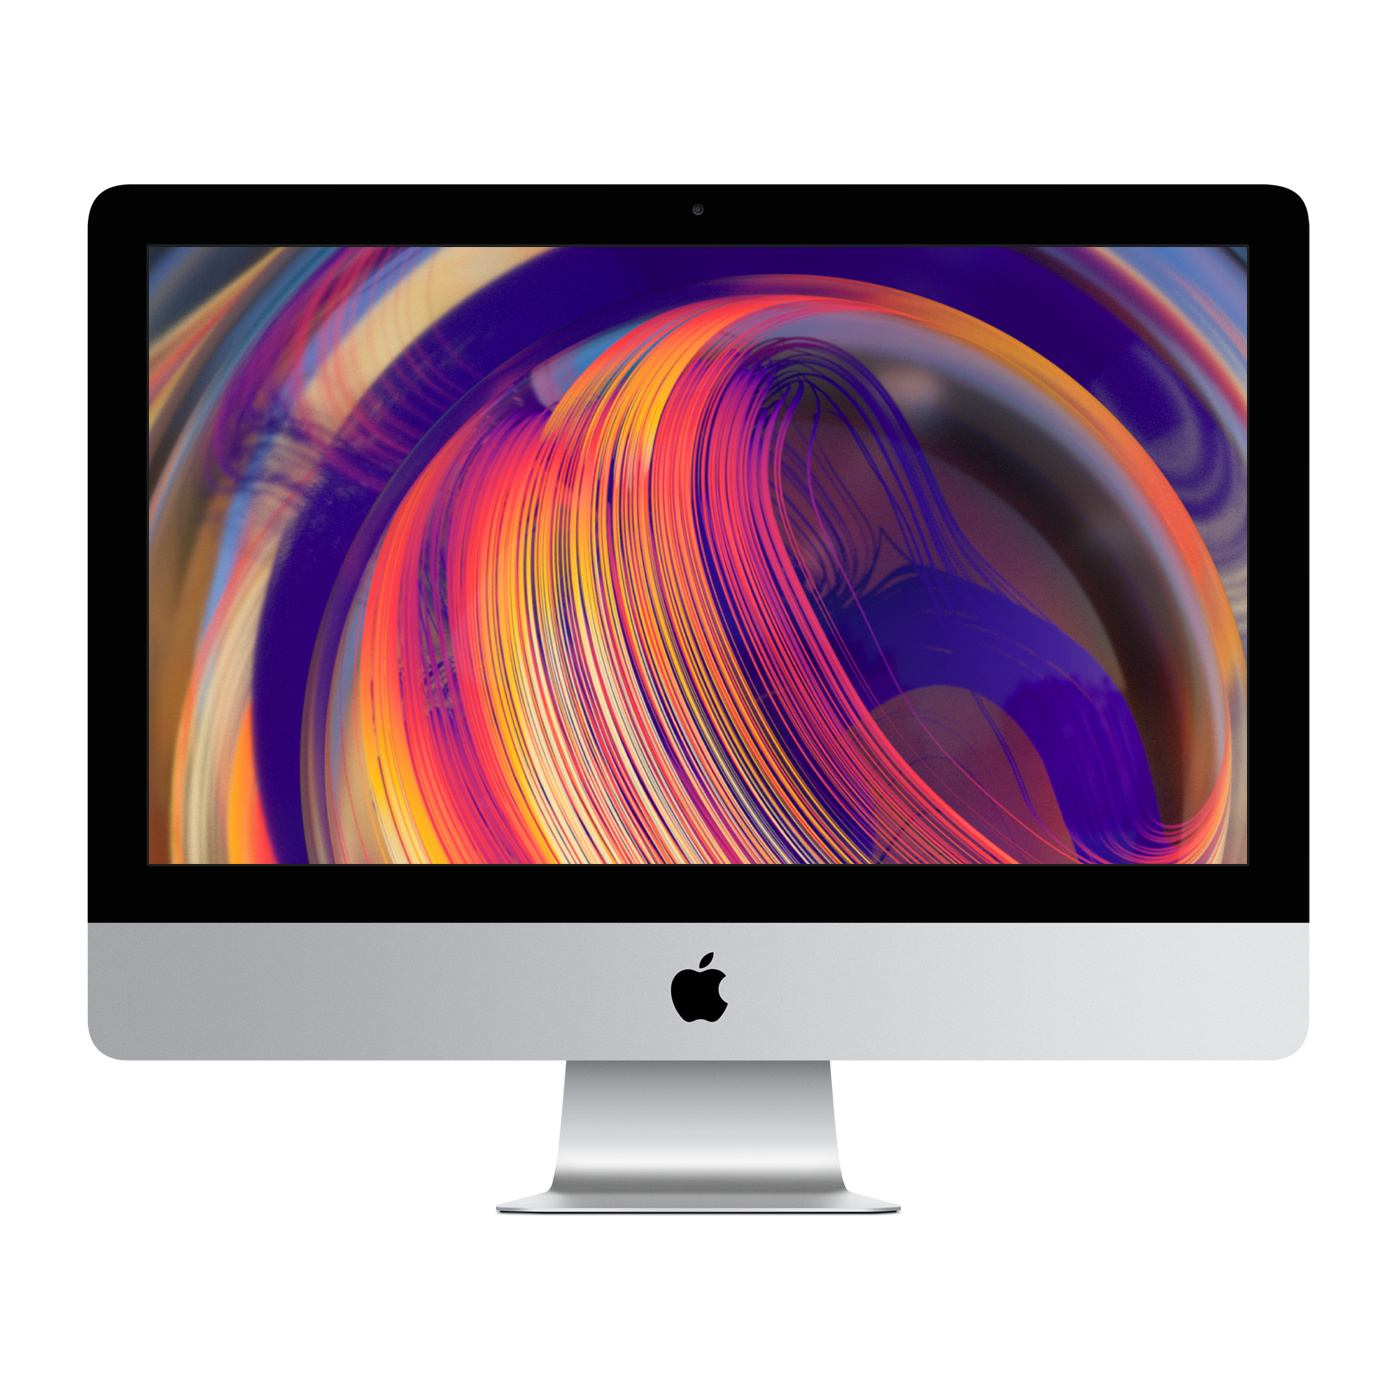 2022026-Apple-iMac-54-6-cm-21-5-4096-x-2304-Pixel-Intel-Core-i3-di-ottava-ge